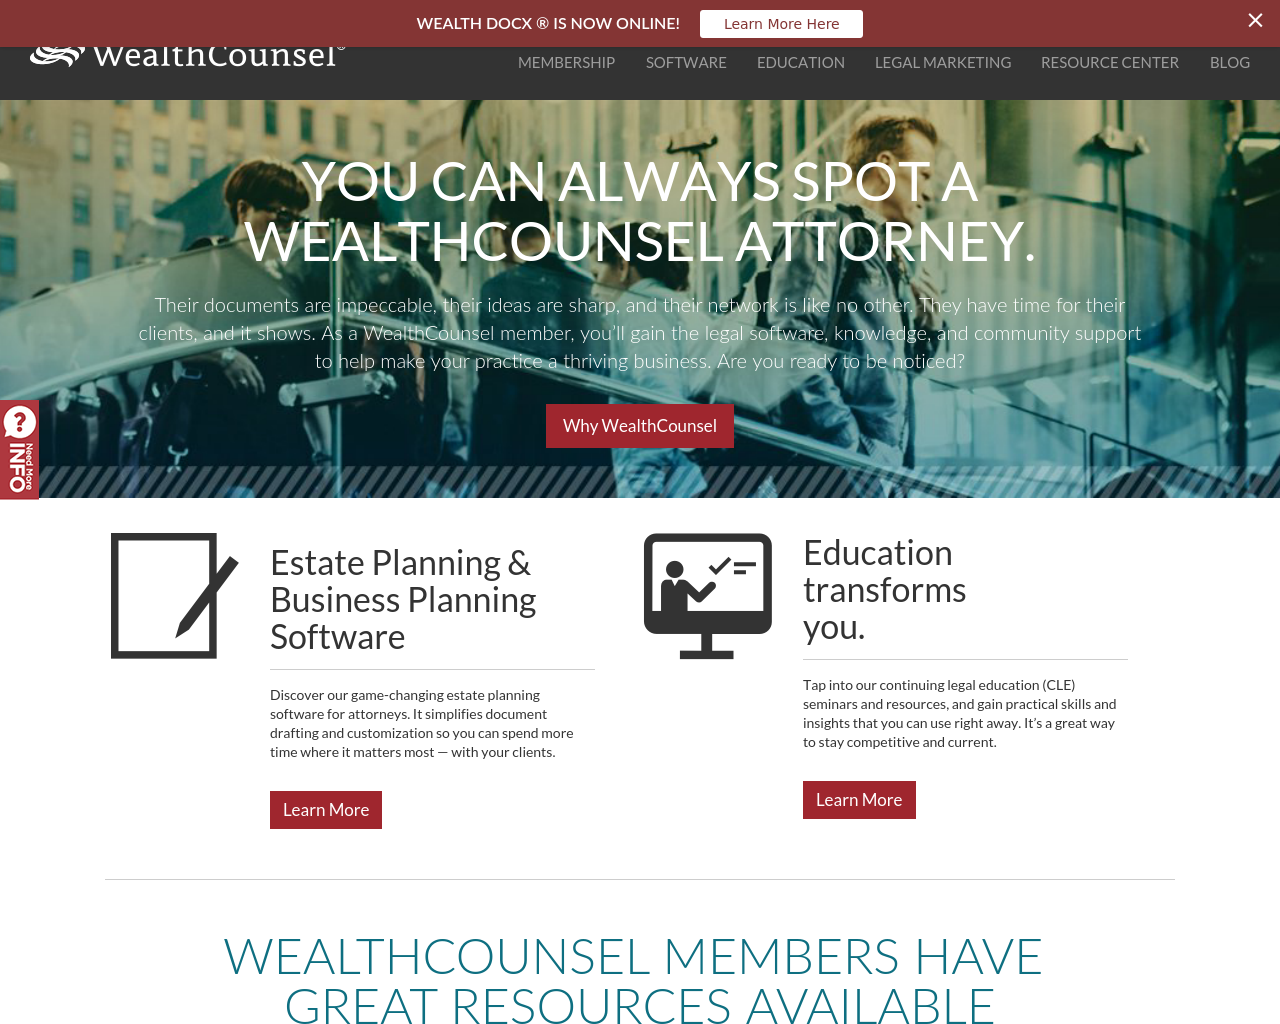 Wealthcounsel,-Llc-Advertising-Reviews-Pricing